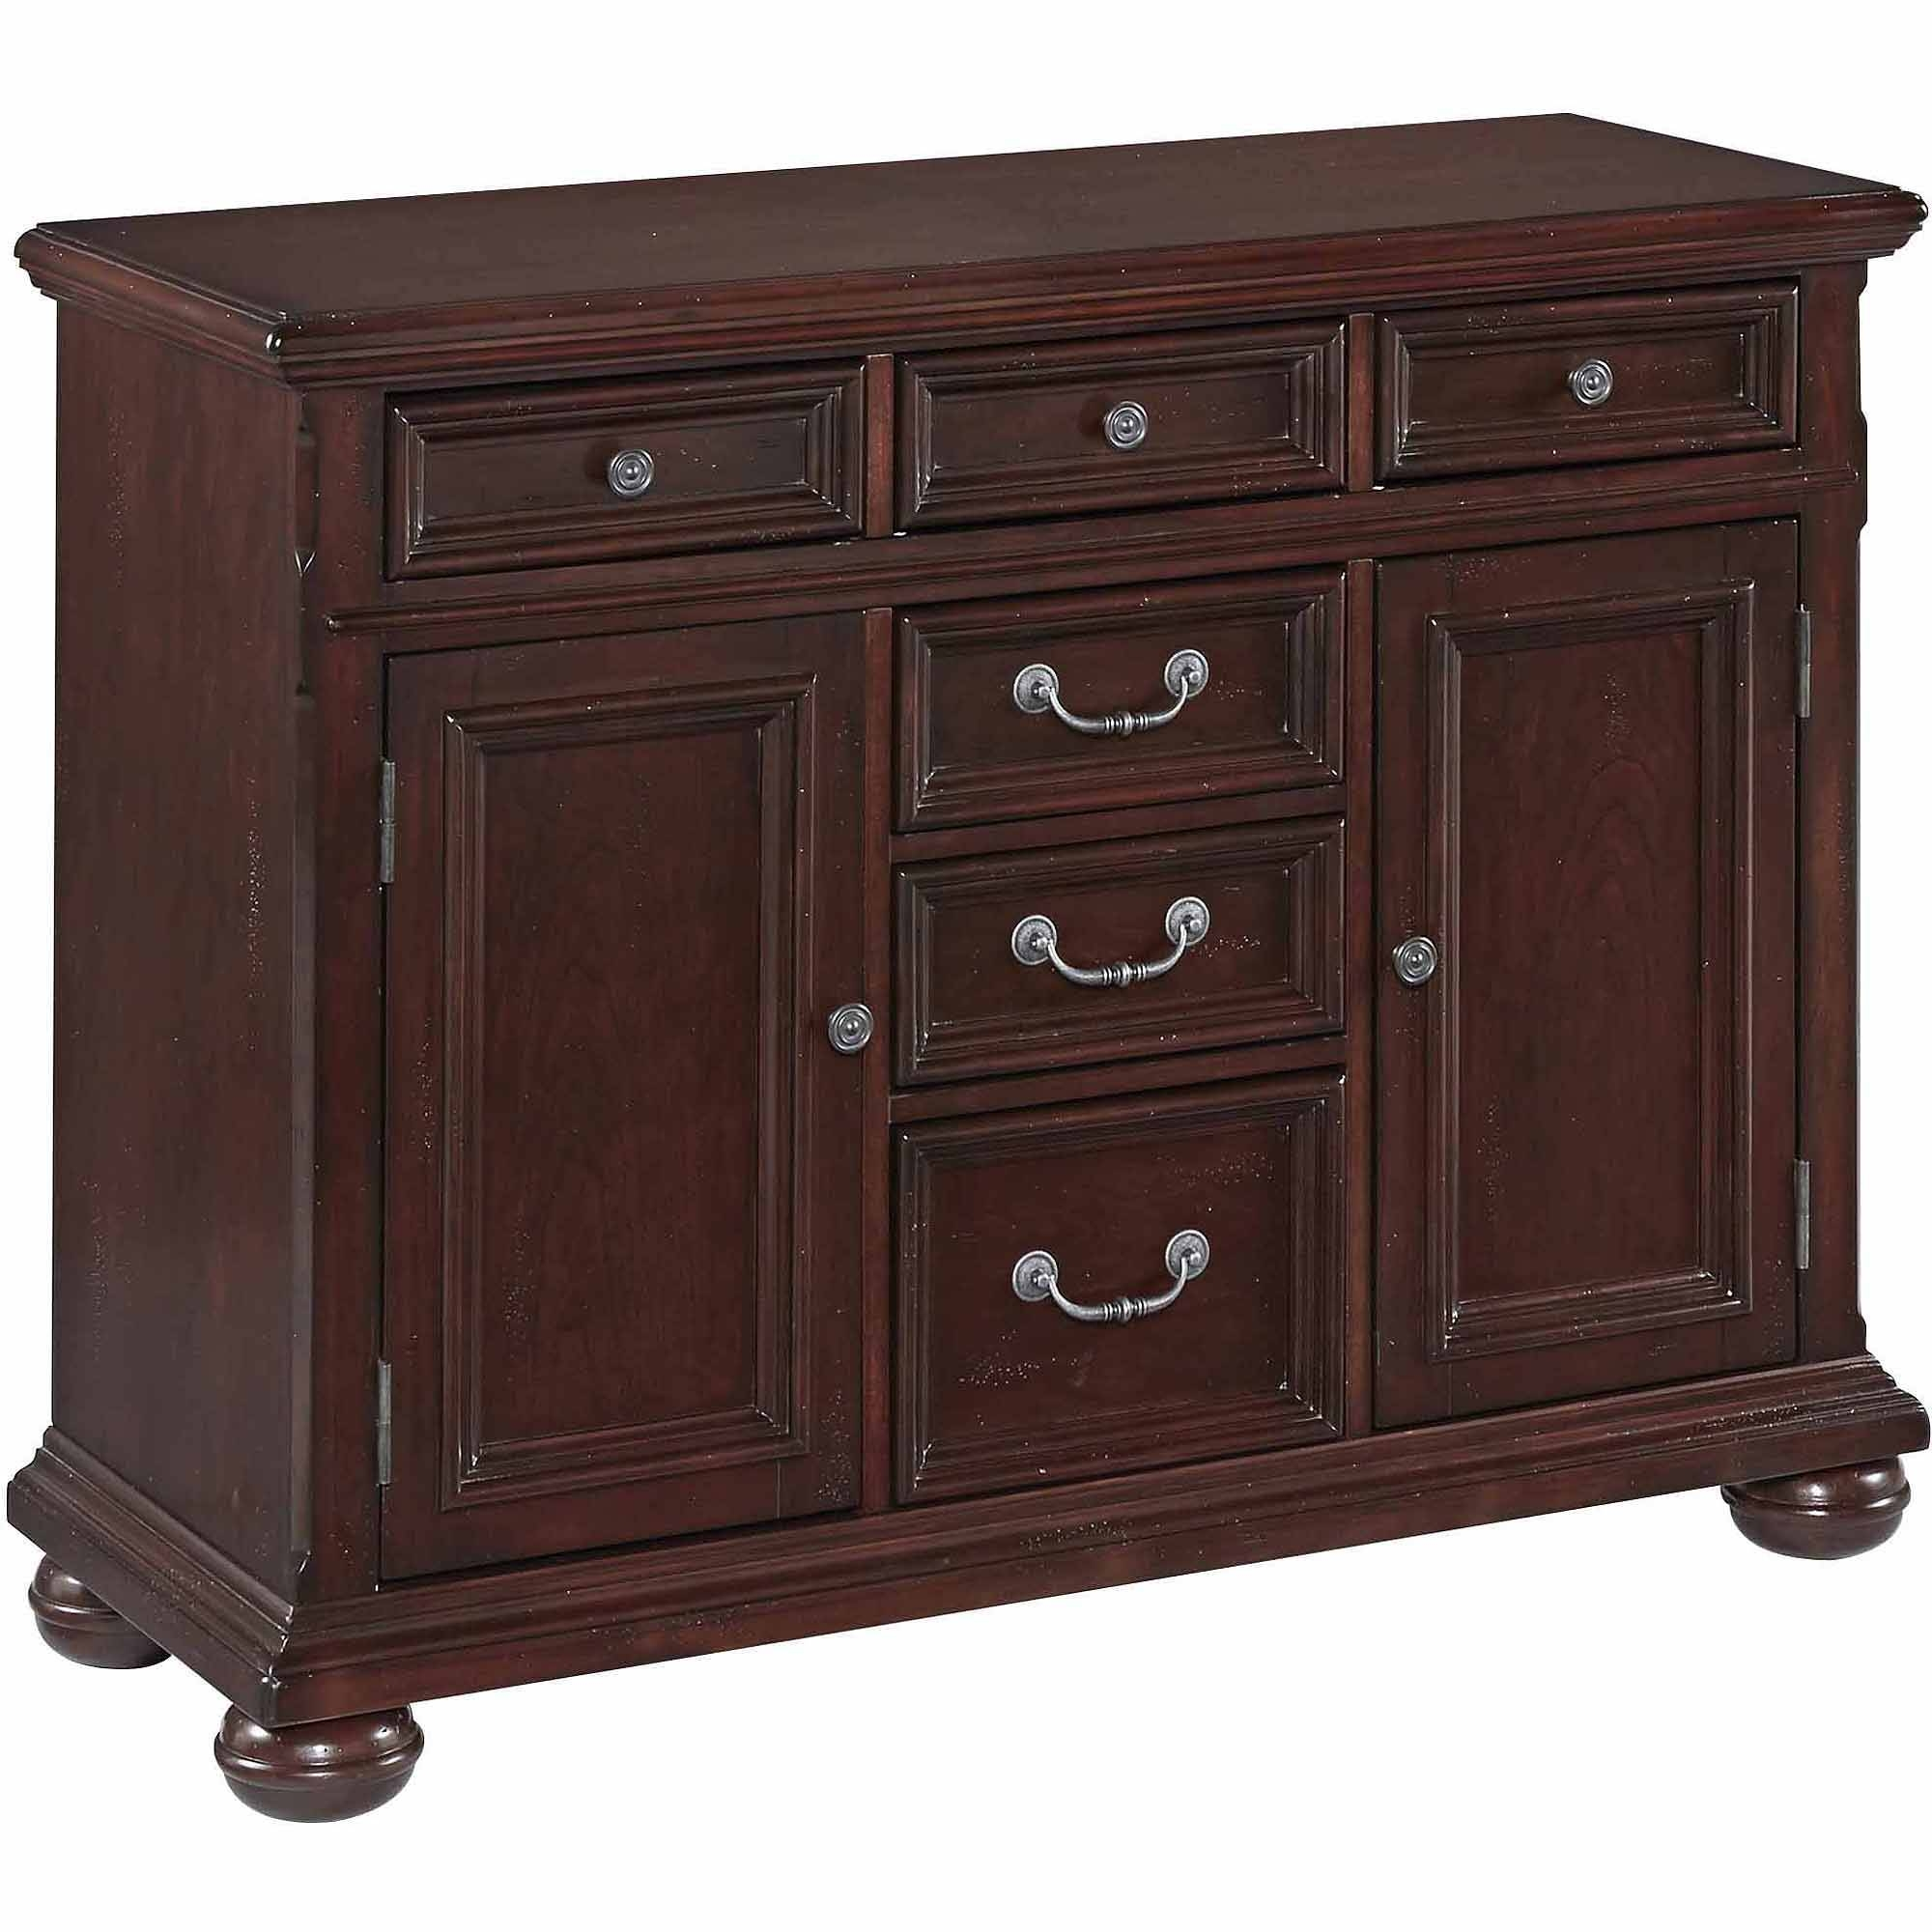 Sideboards & Buffets - Walmart for 60 Inch Sideboards (Image 15 of 15)